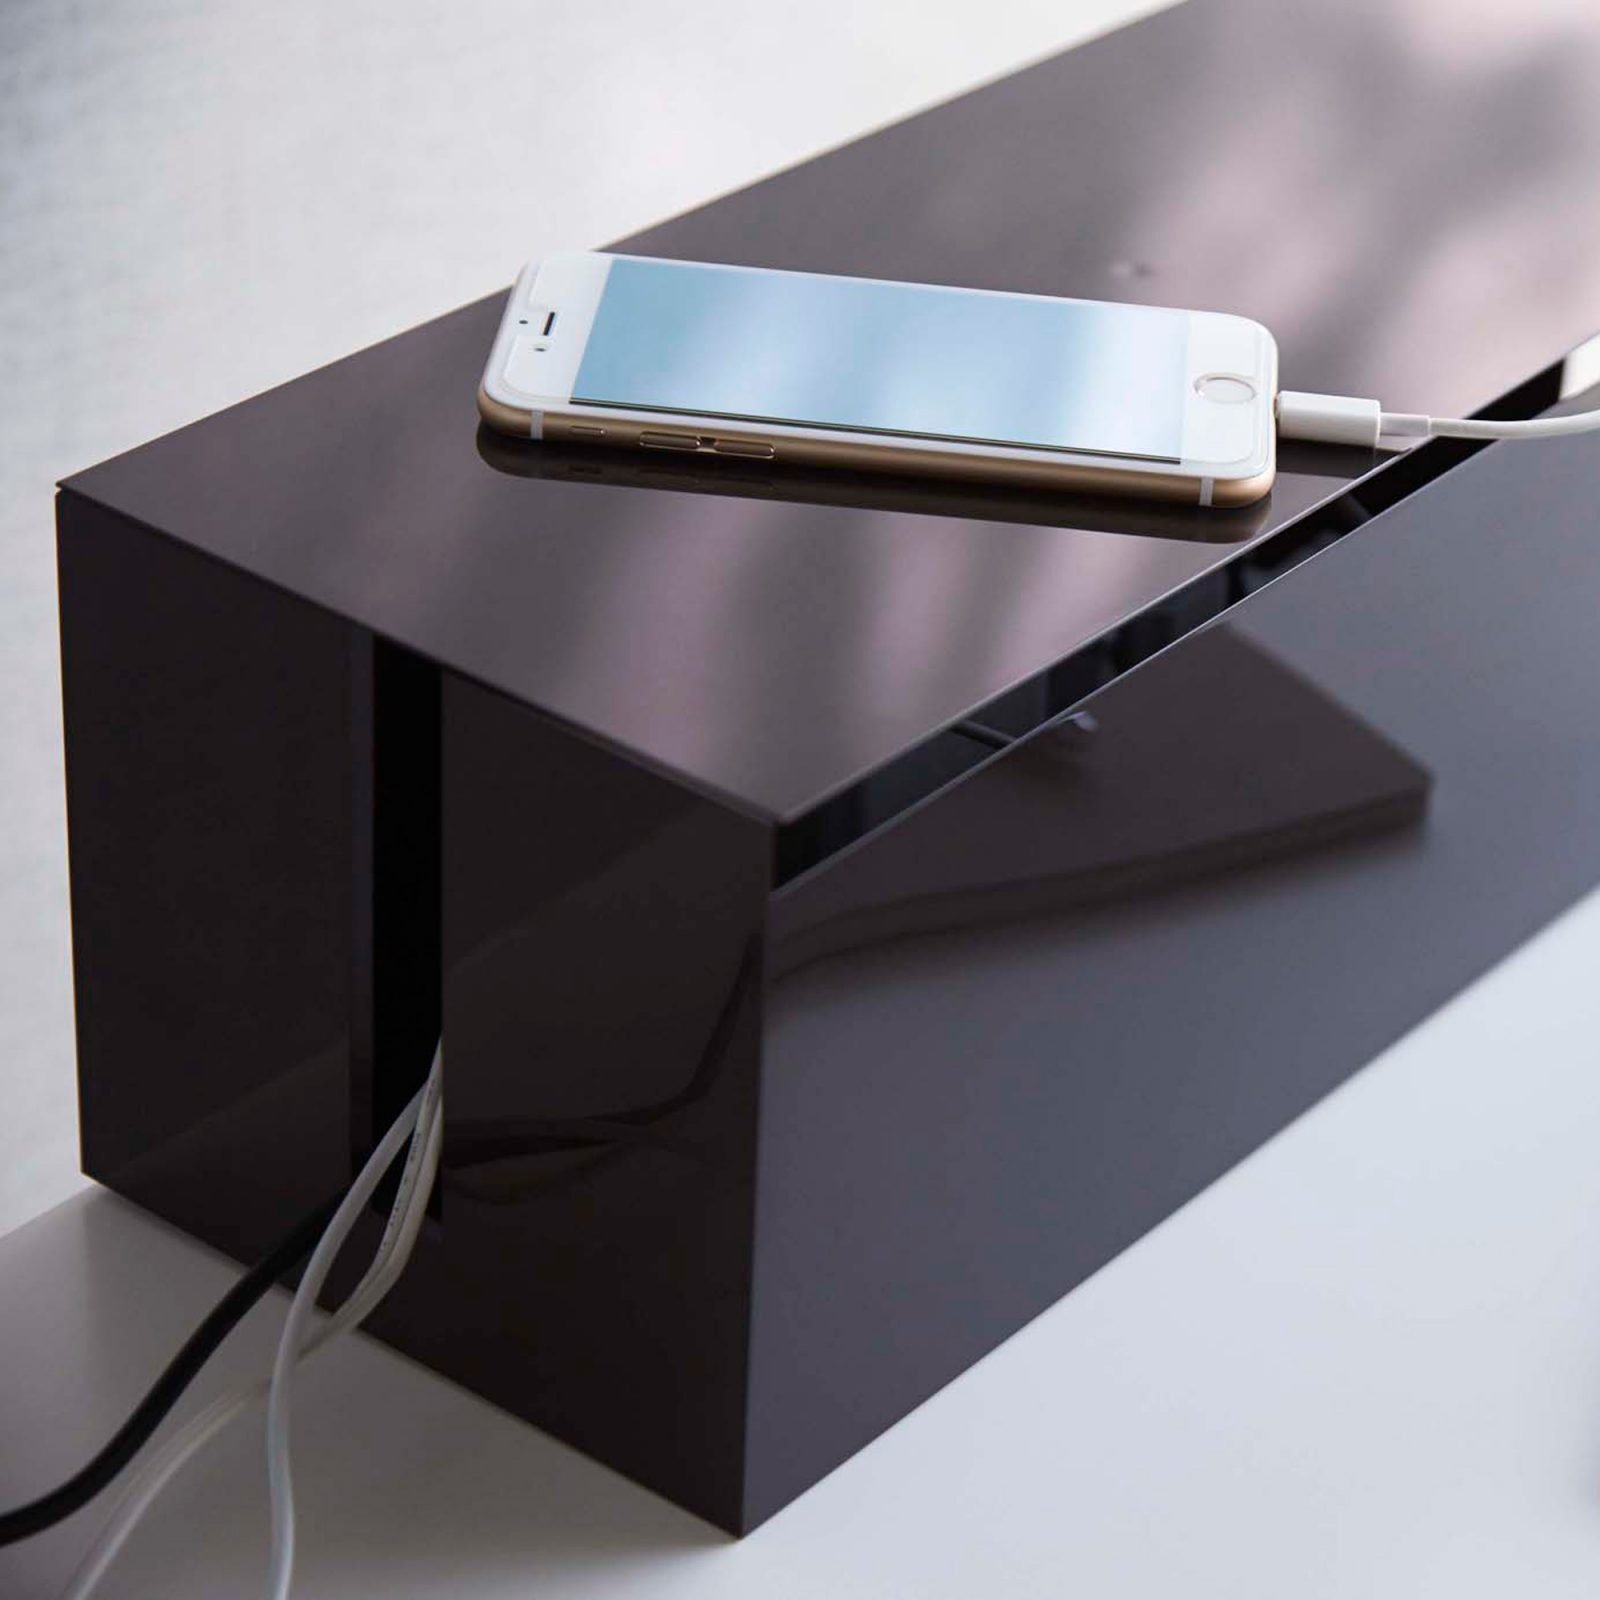 web-cable-box-brown-5